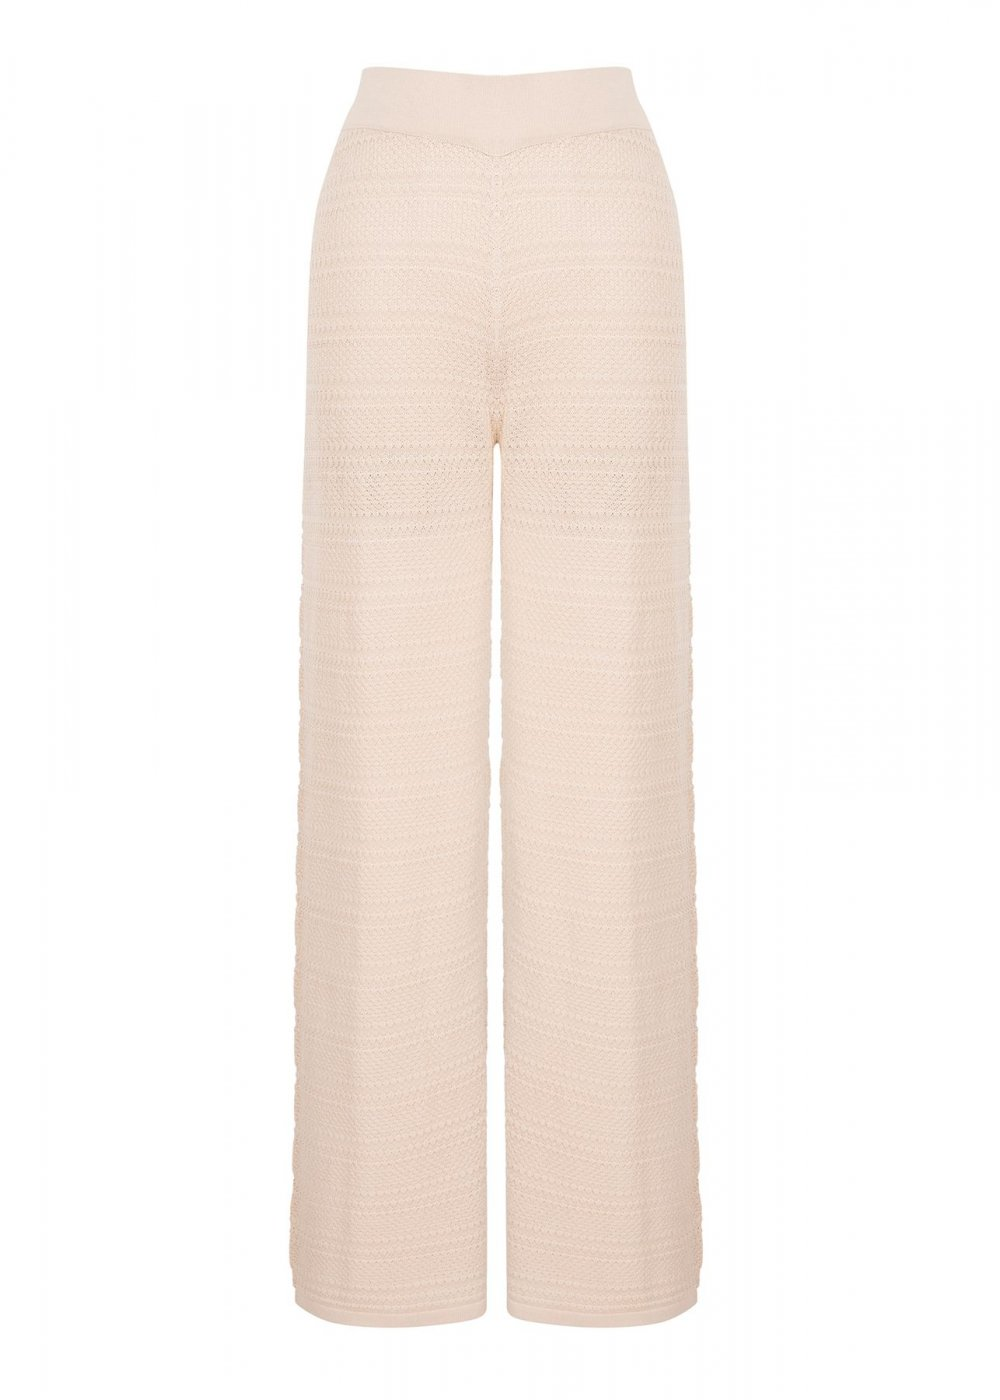 POINTELLE SAND KNITTED PANT